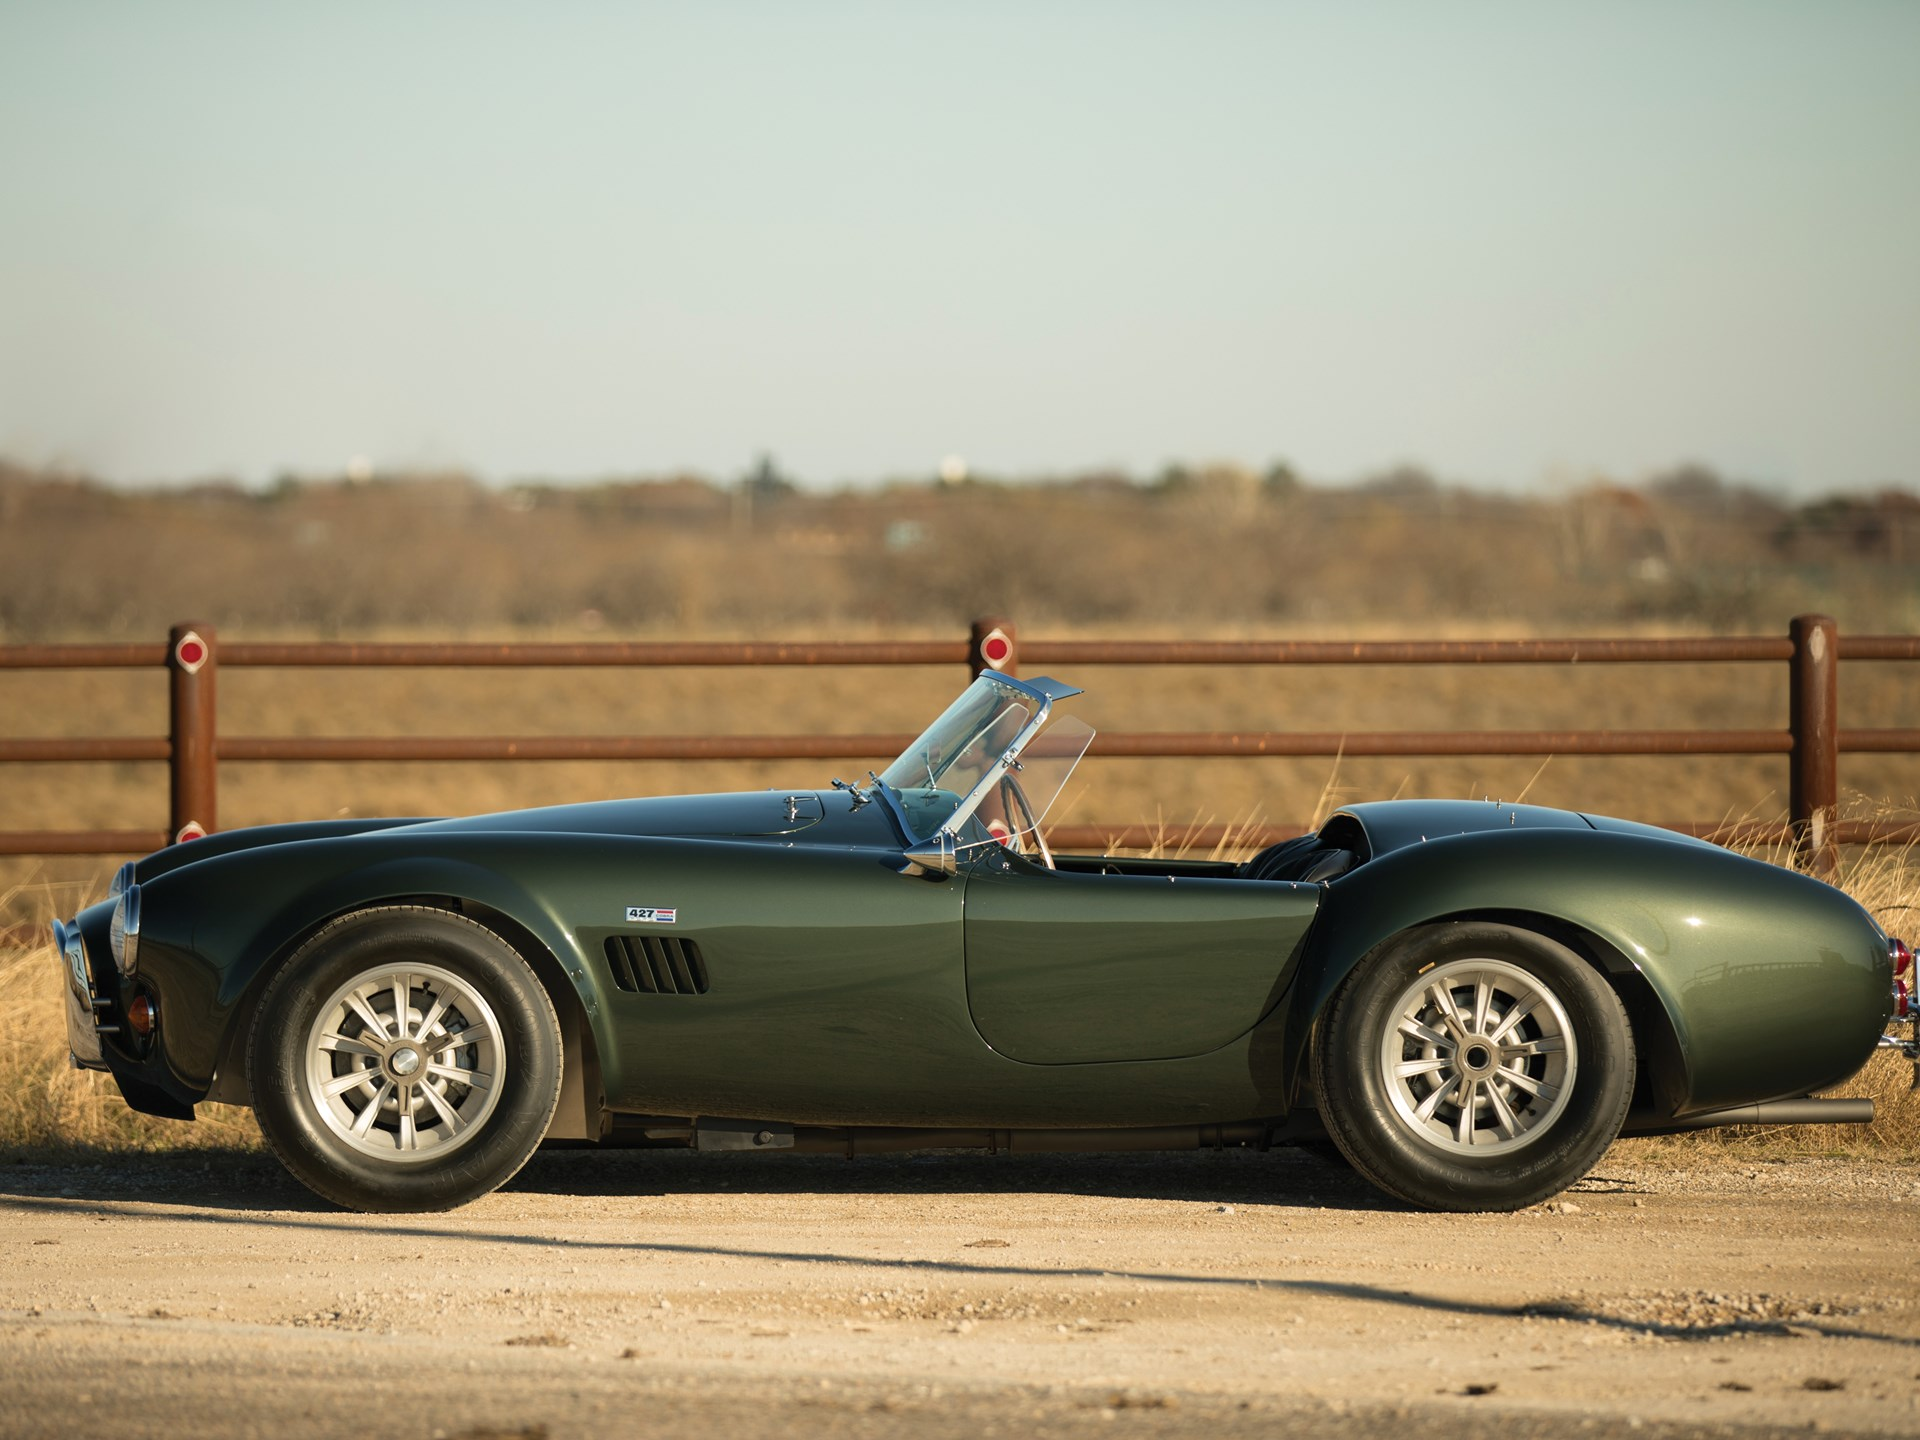 1967 Shelby 427 Cobra side profile